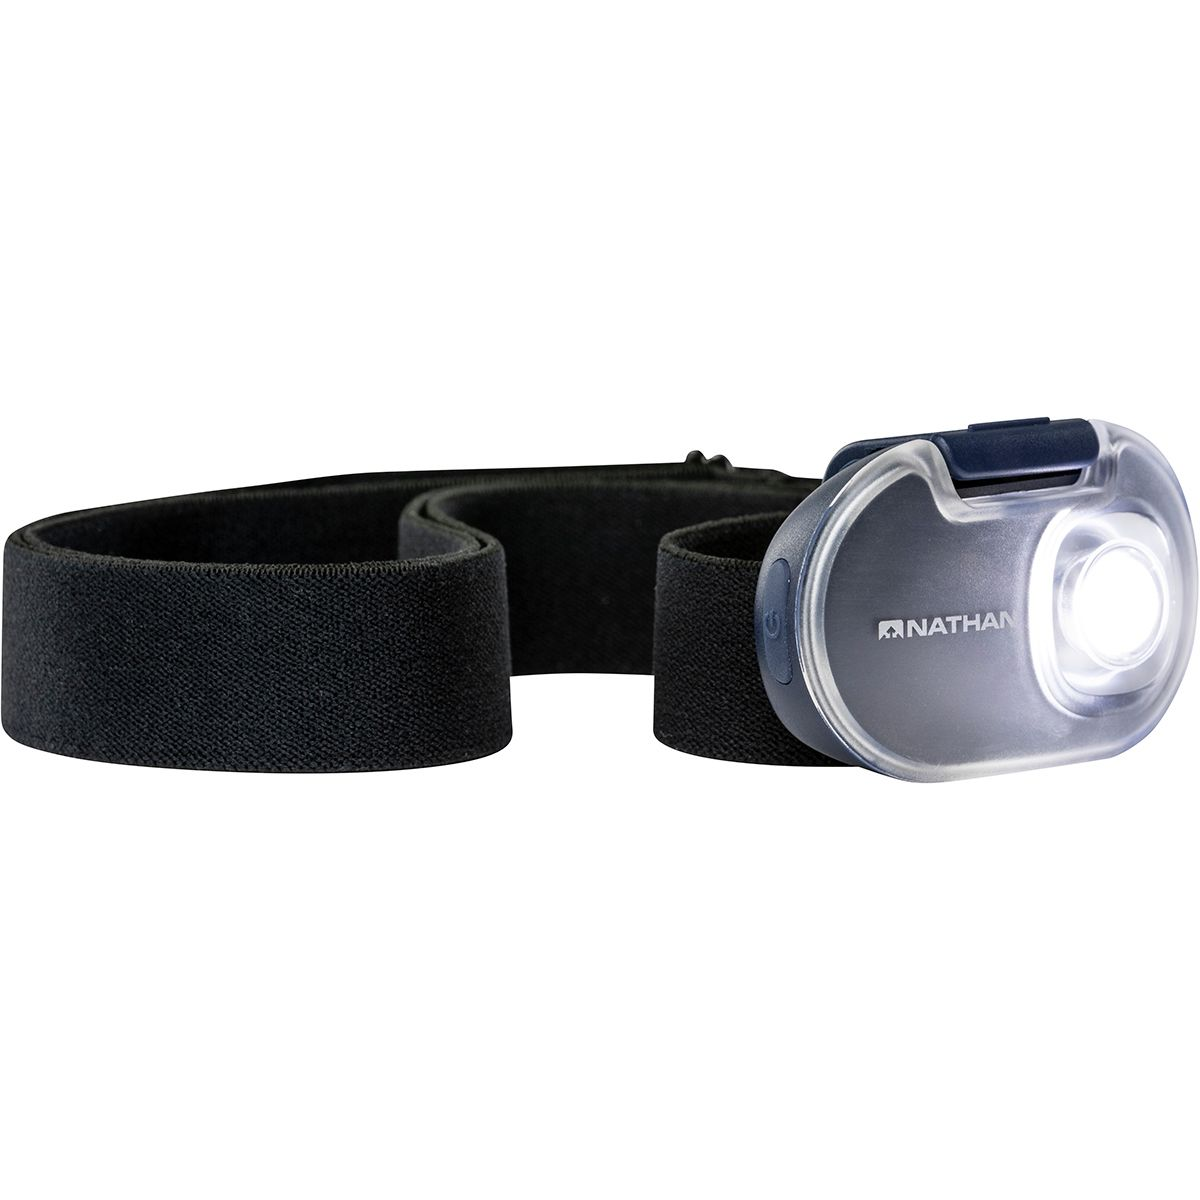 Nathan Luna Fire 250 RX Chest/Waist Light